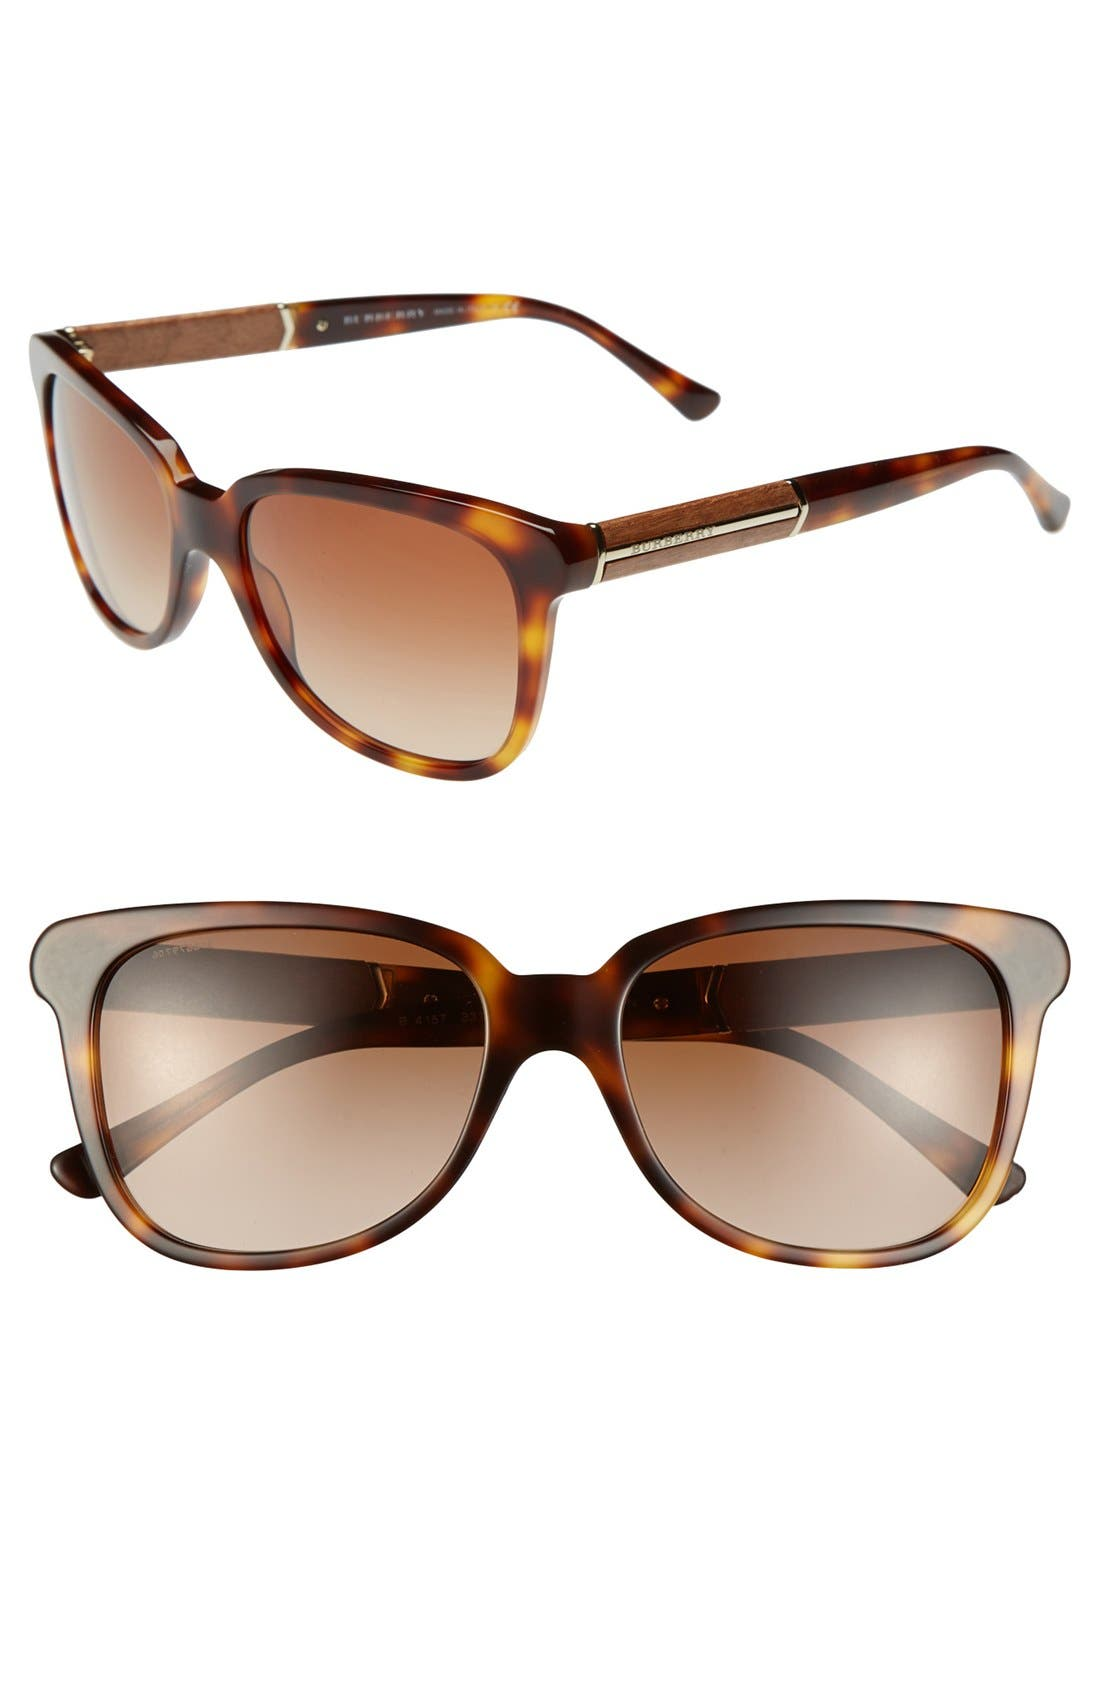 Alternate Image 1 Selected - Burberry Square 56mm Sunglasses